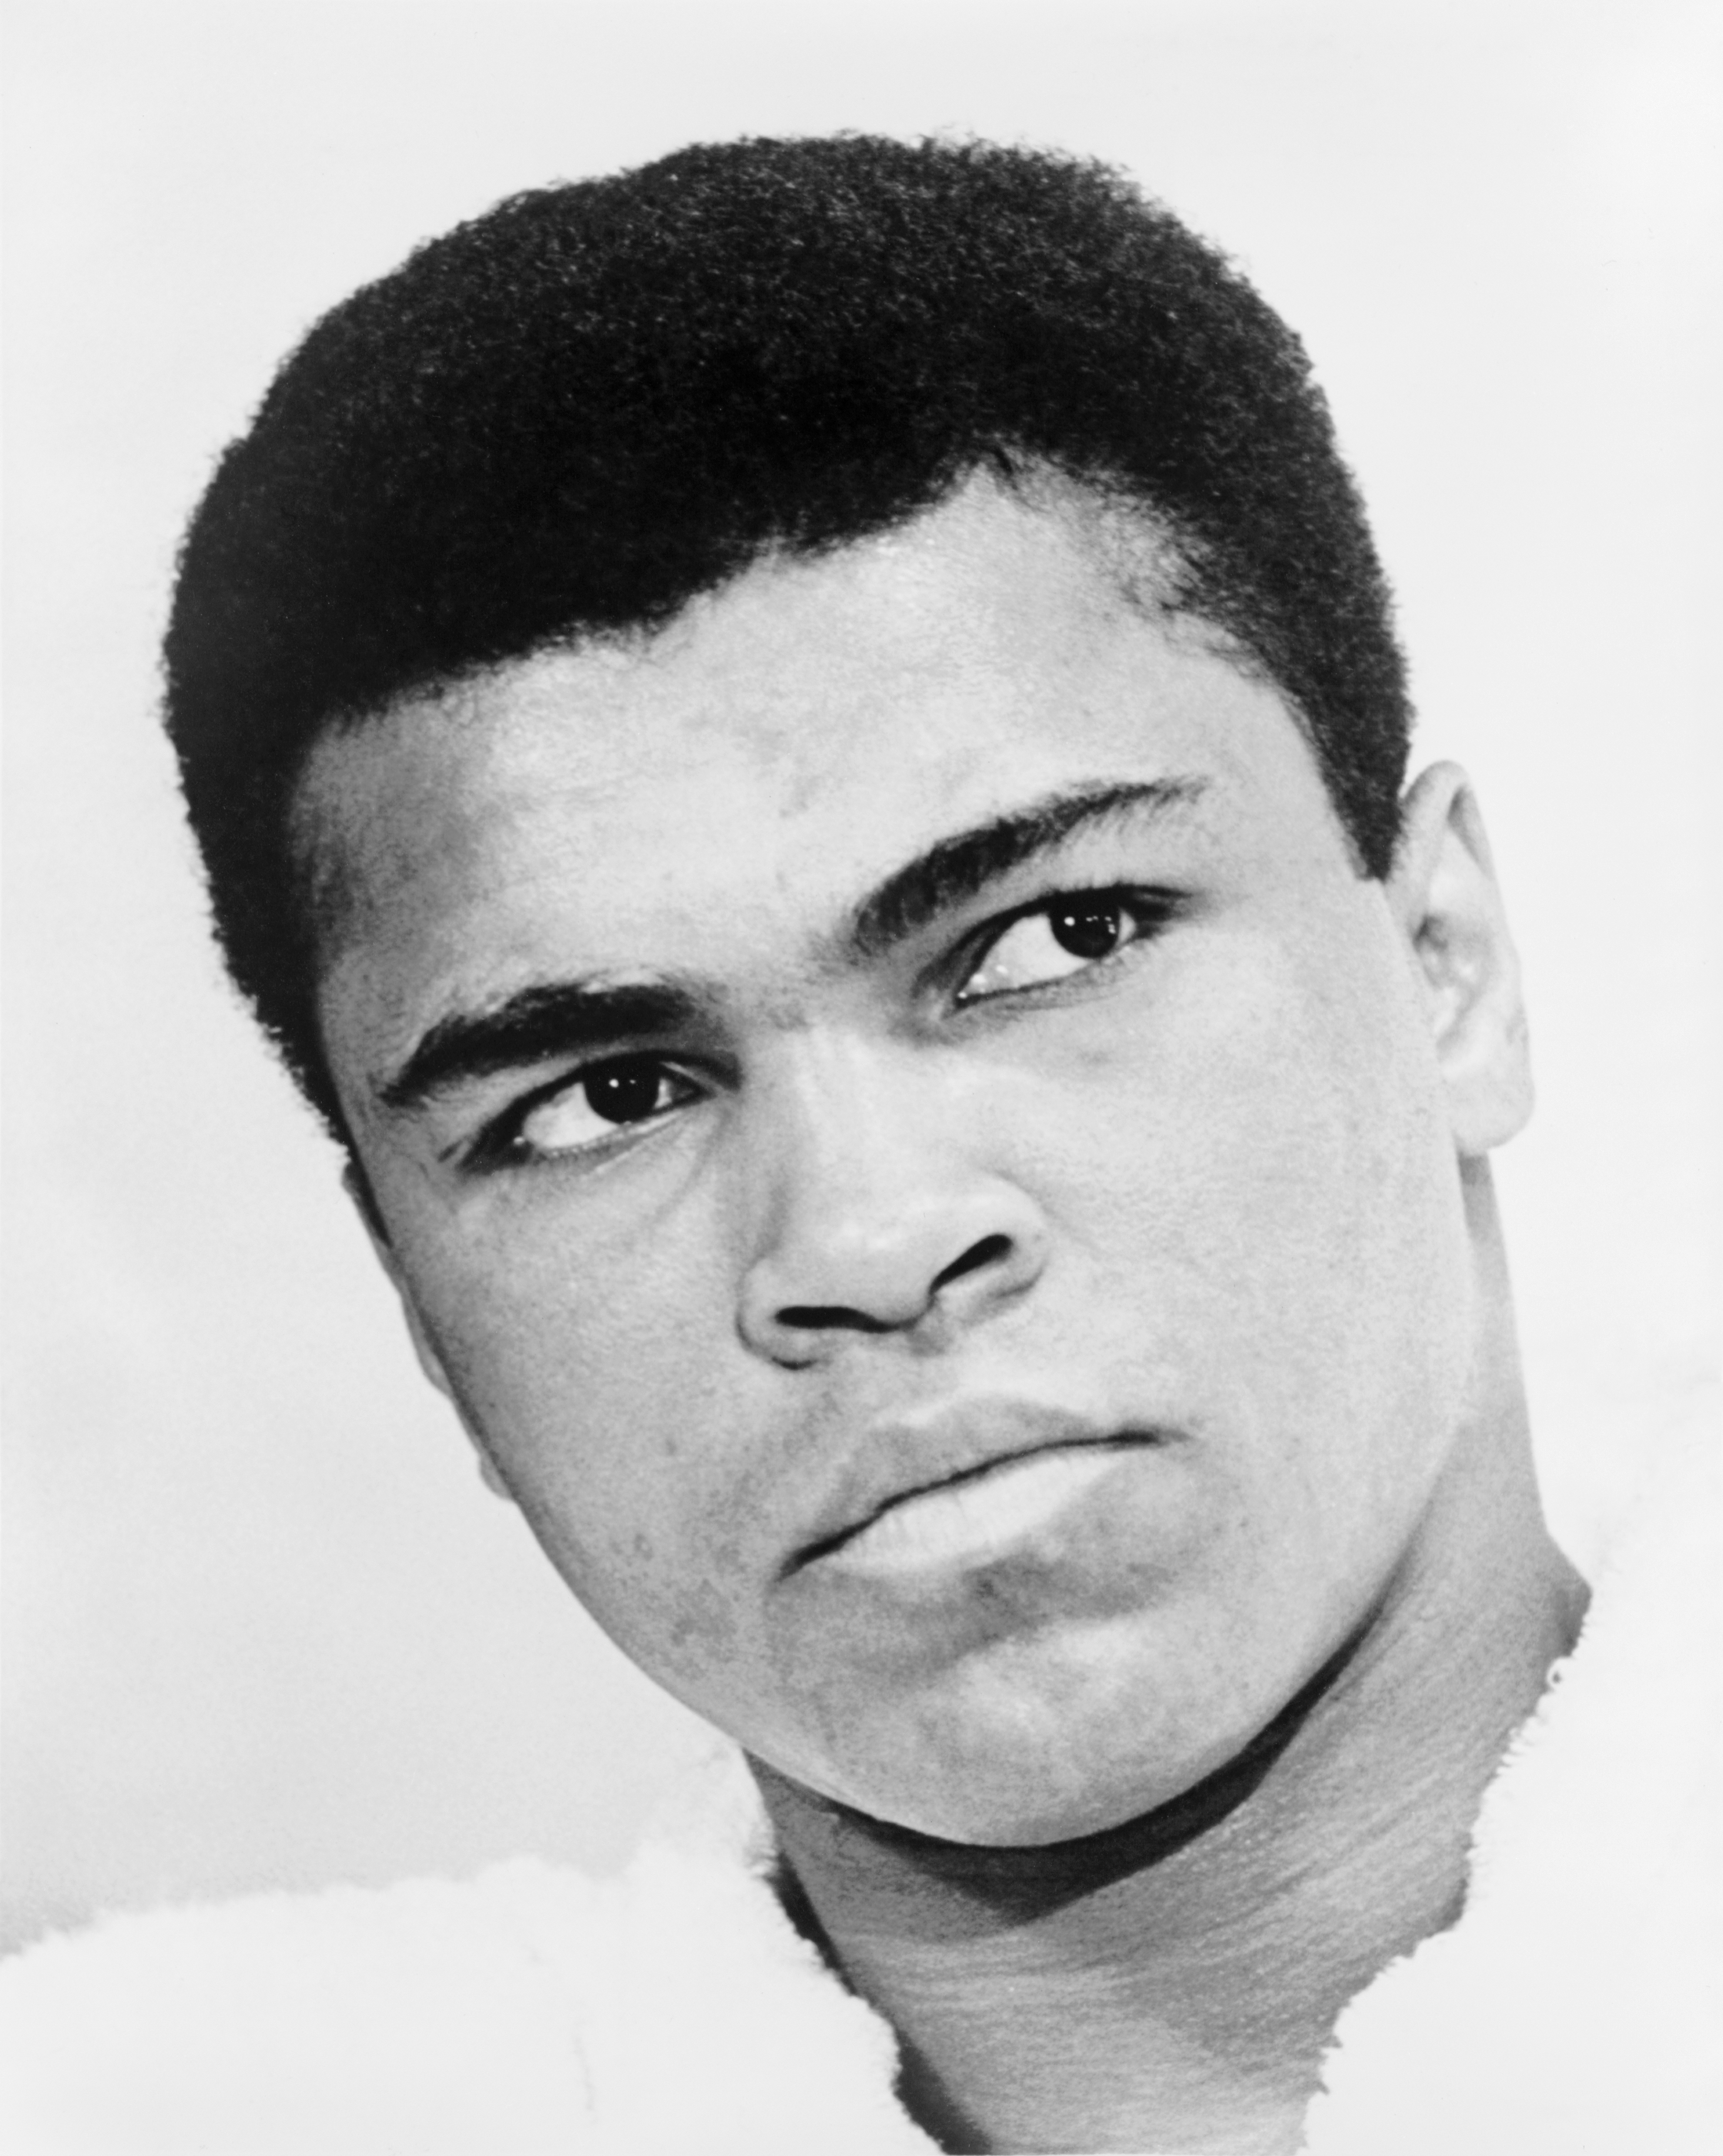 http://upload.wikimedia.org/wikipedia/commons/8/89/Muhammad_Ali_NYWTS.jpg